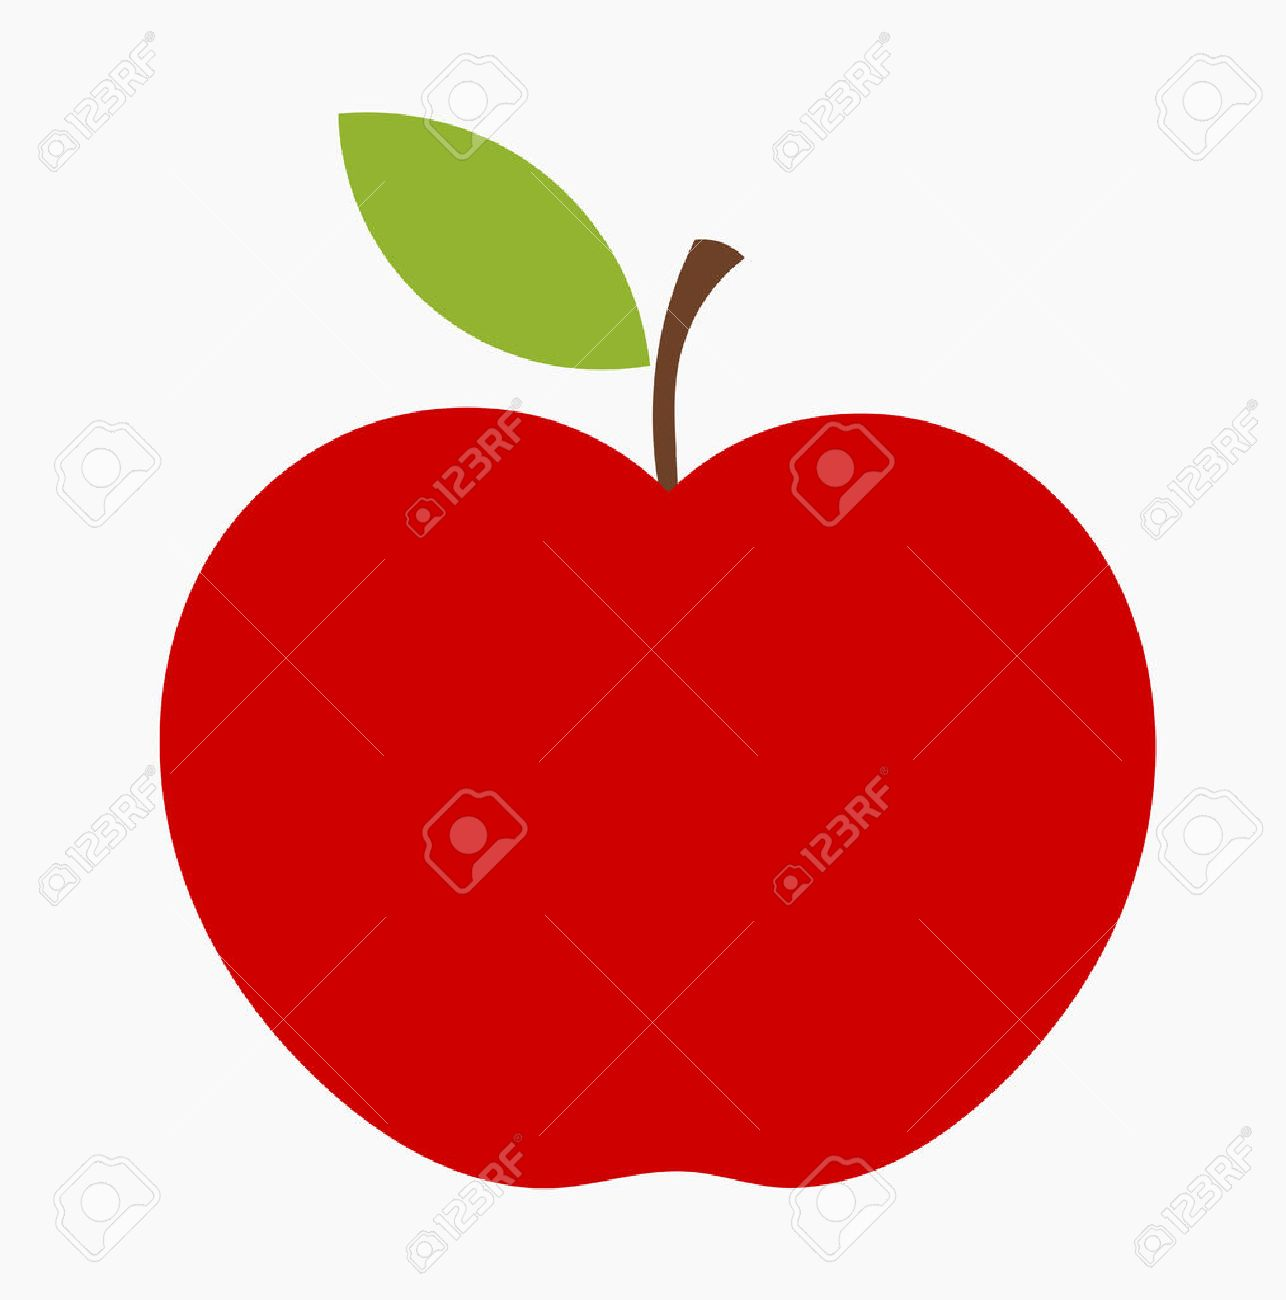 Red Apple Icon. Royalty Free Cliparts, Vectors, And Stock ...